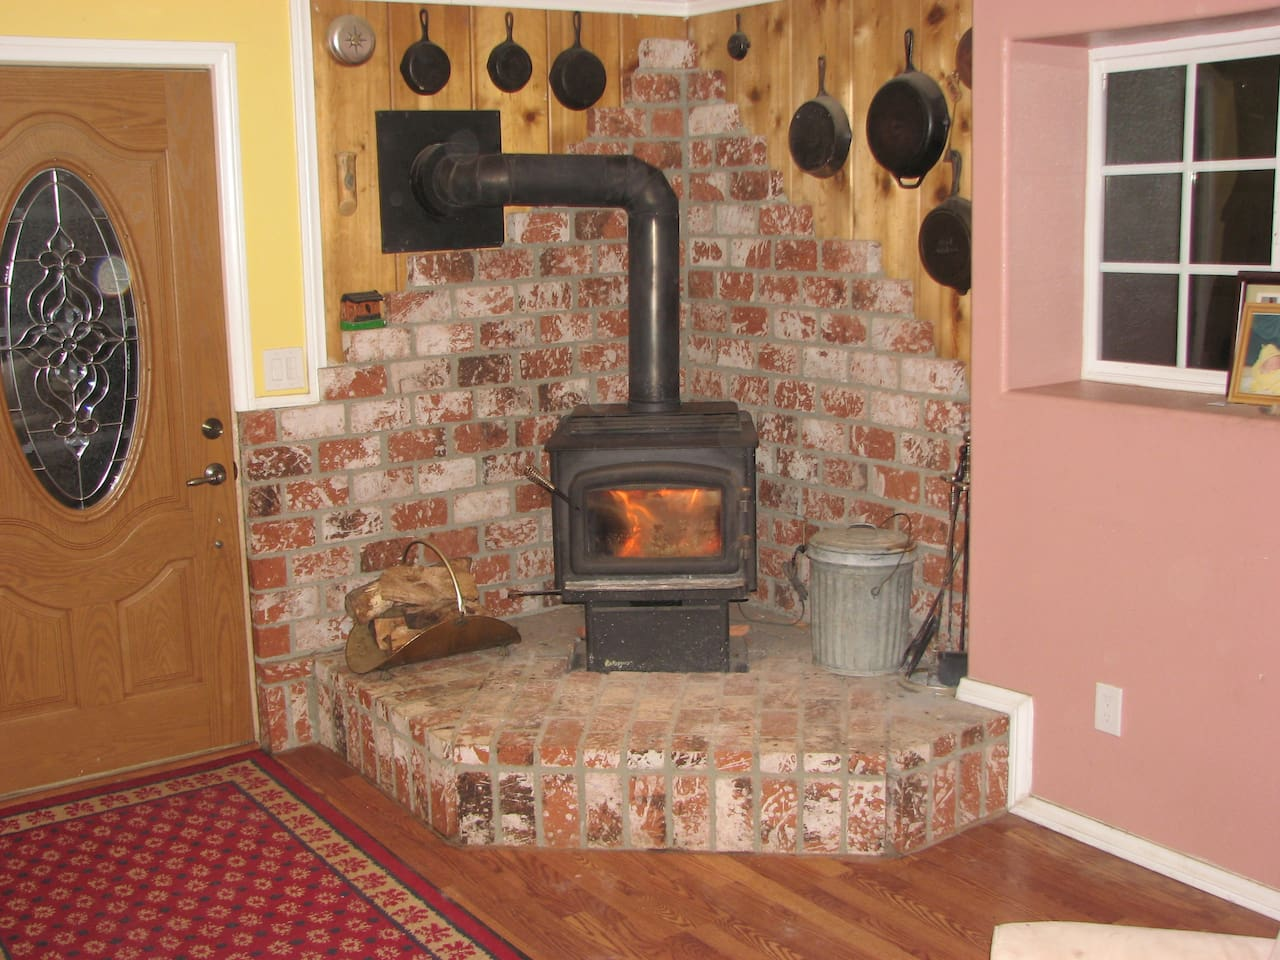 Fire place - Firewood included!